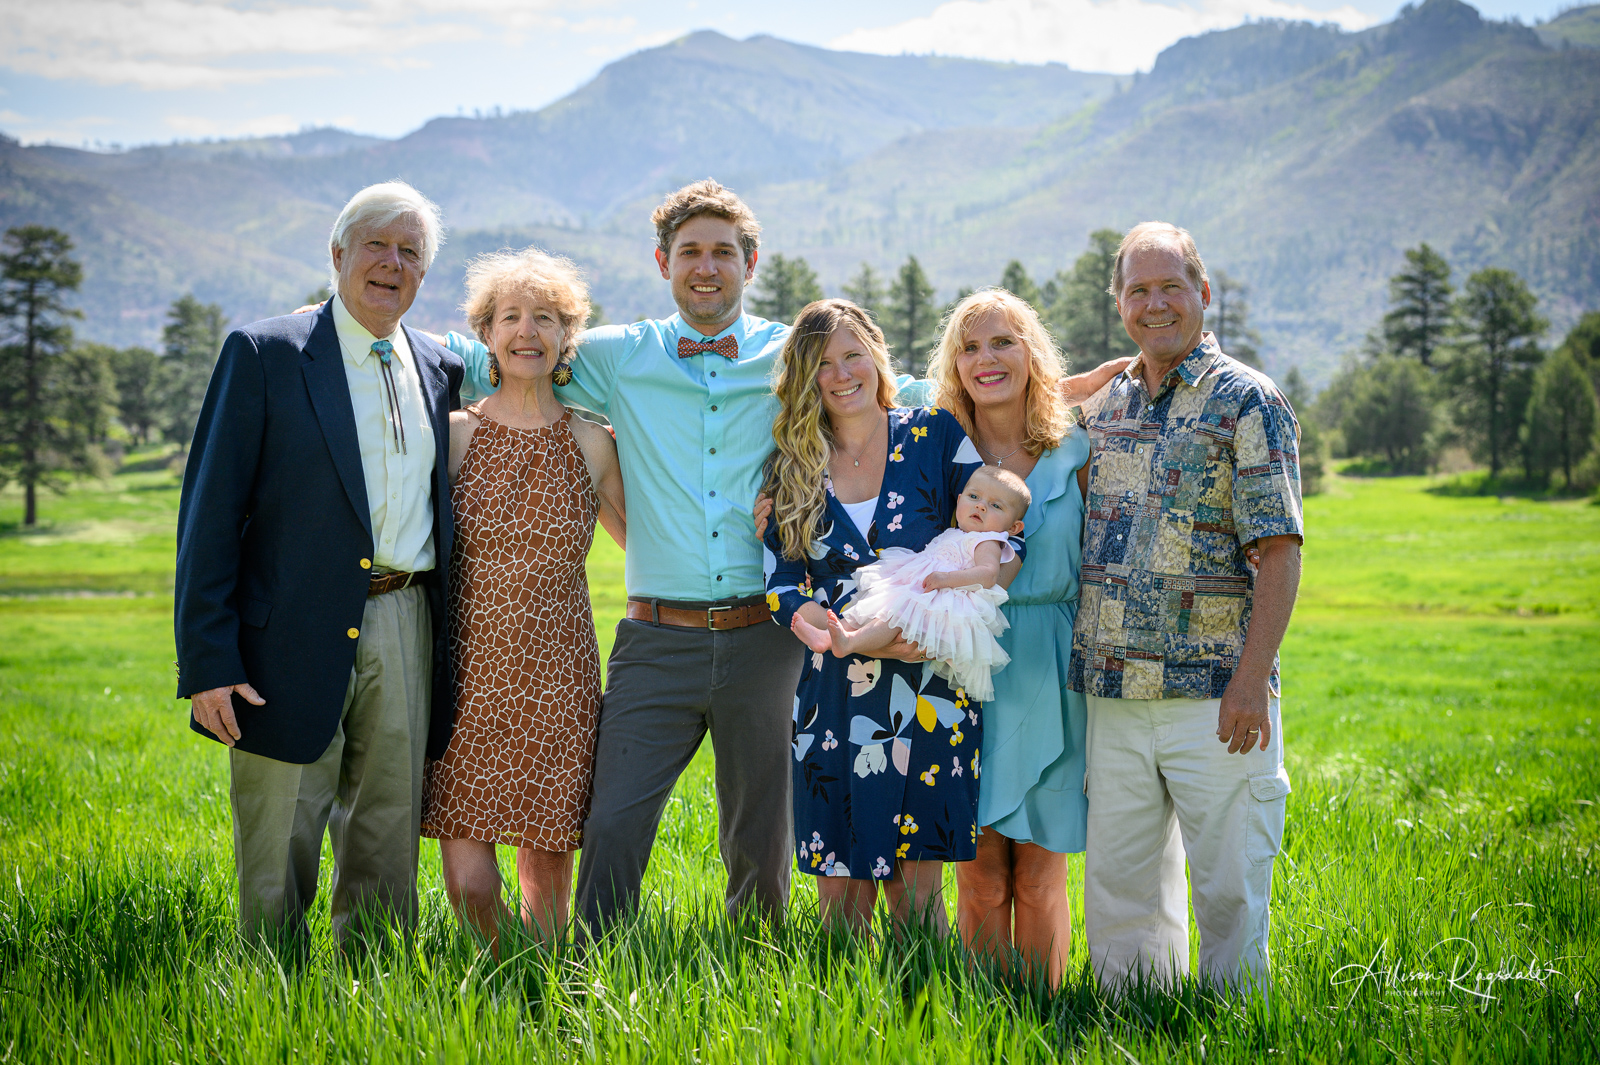 Mace Family Photos in Durango, Colorado